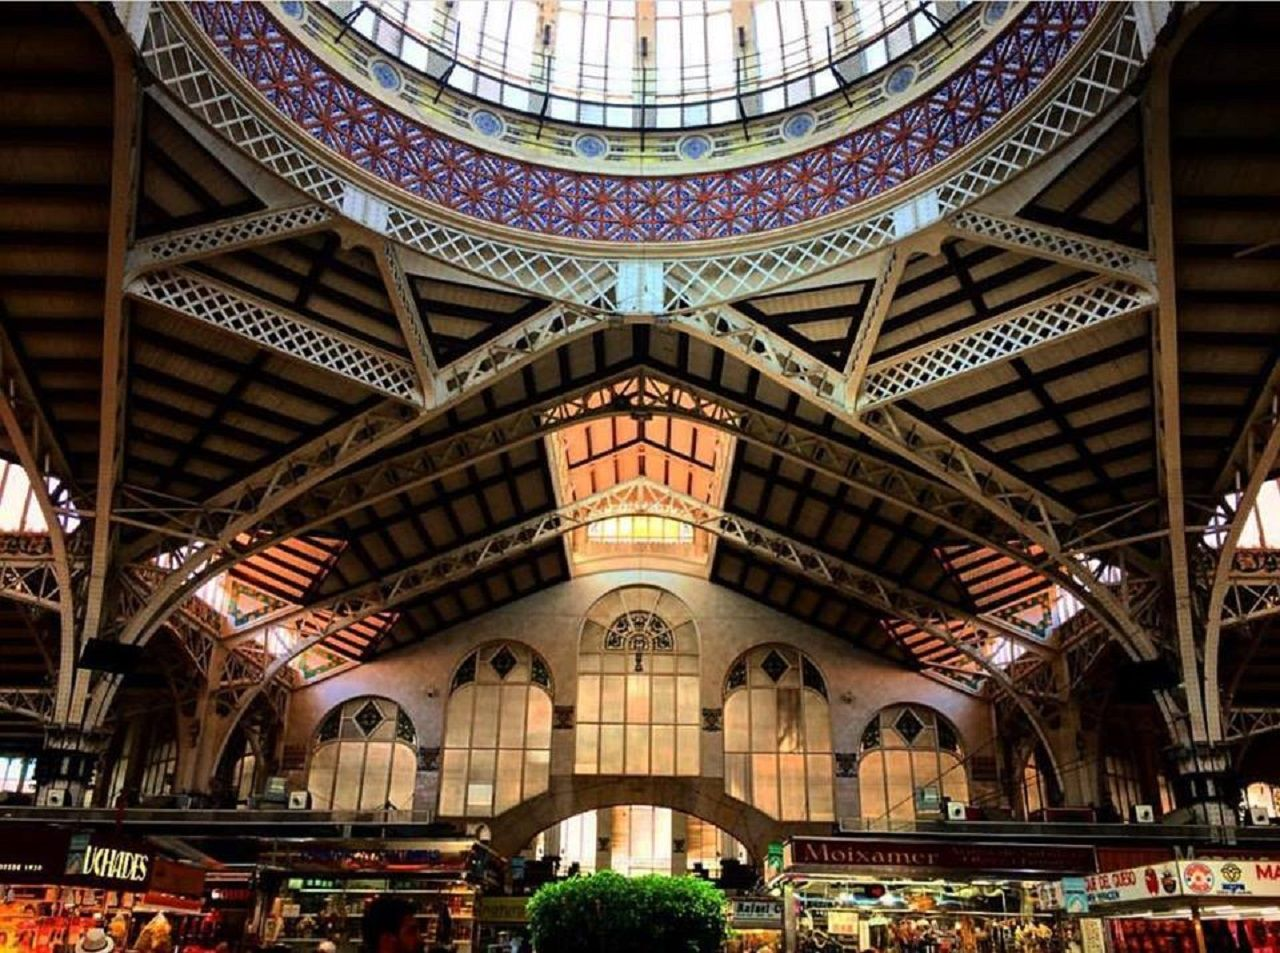 Mercado Central in Valencia, Spain